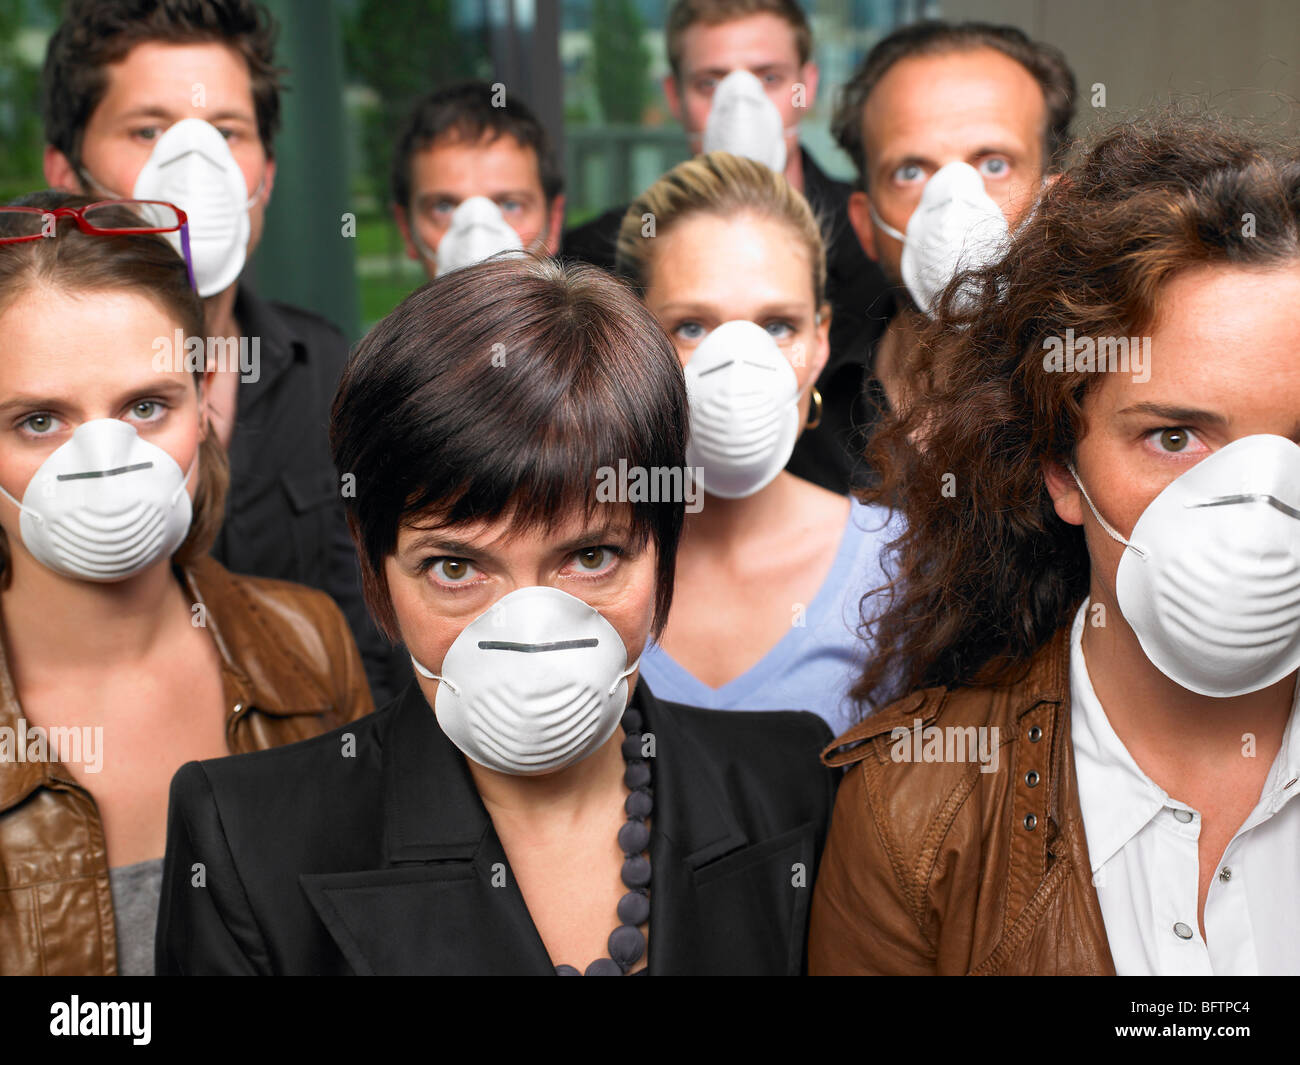 Group of people wearing protection masks - Stock Image